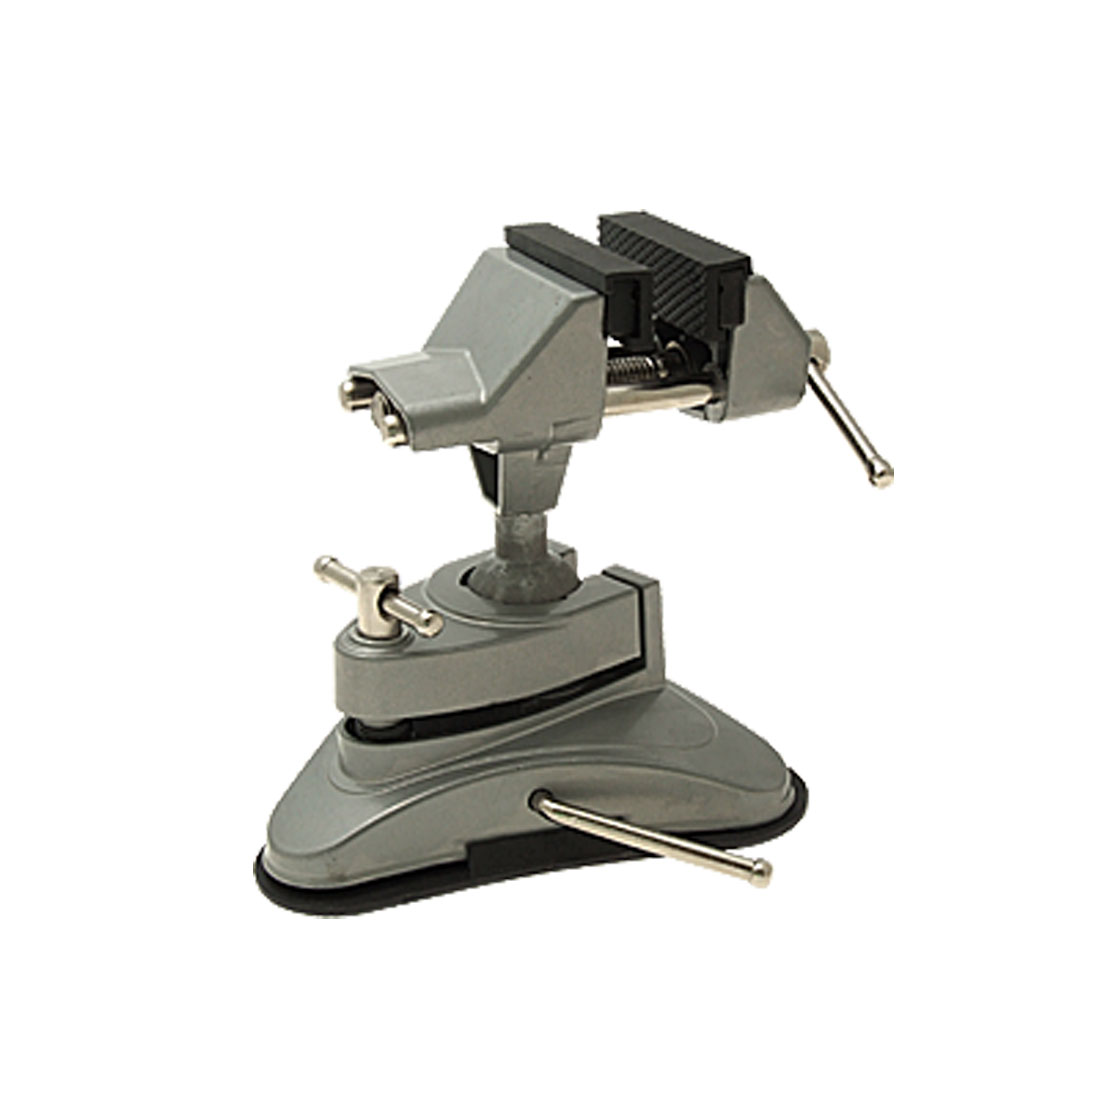 Mini Craft Jewellers Hobby Table Bench Vice with Suction Base